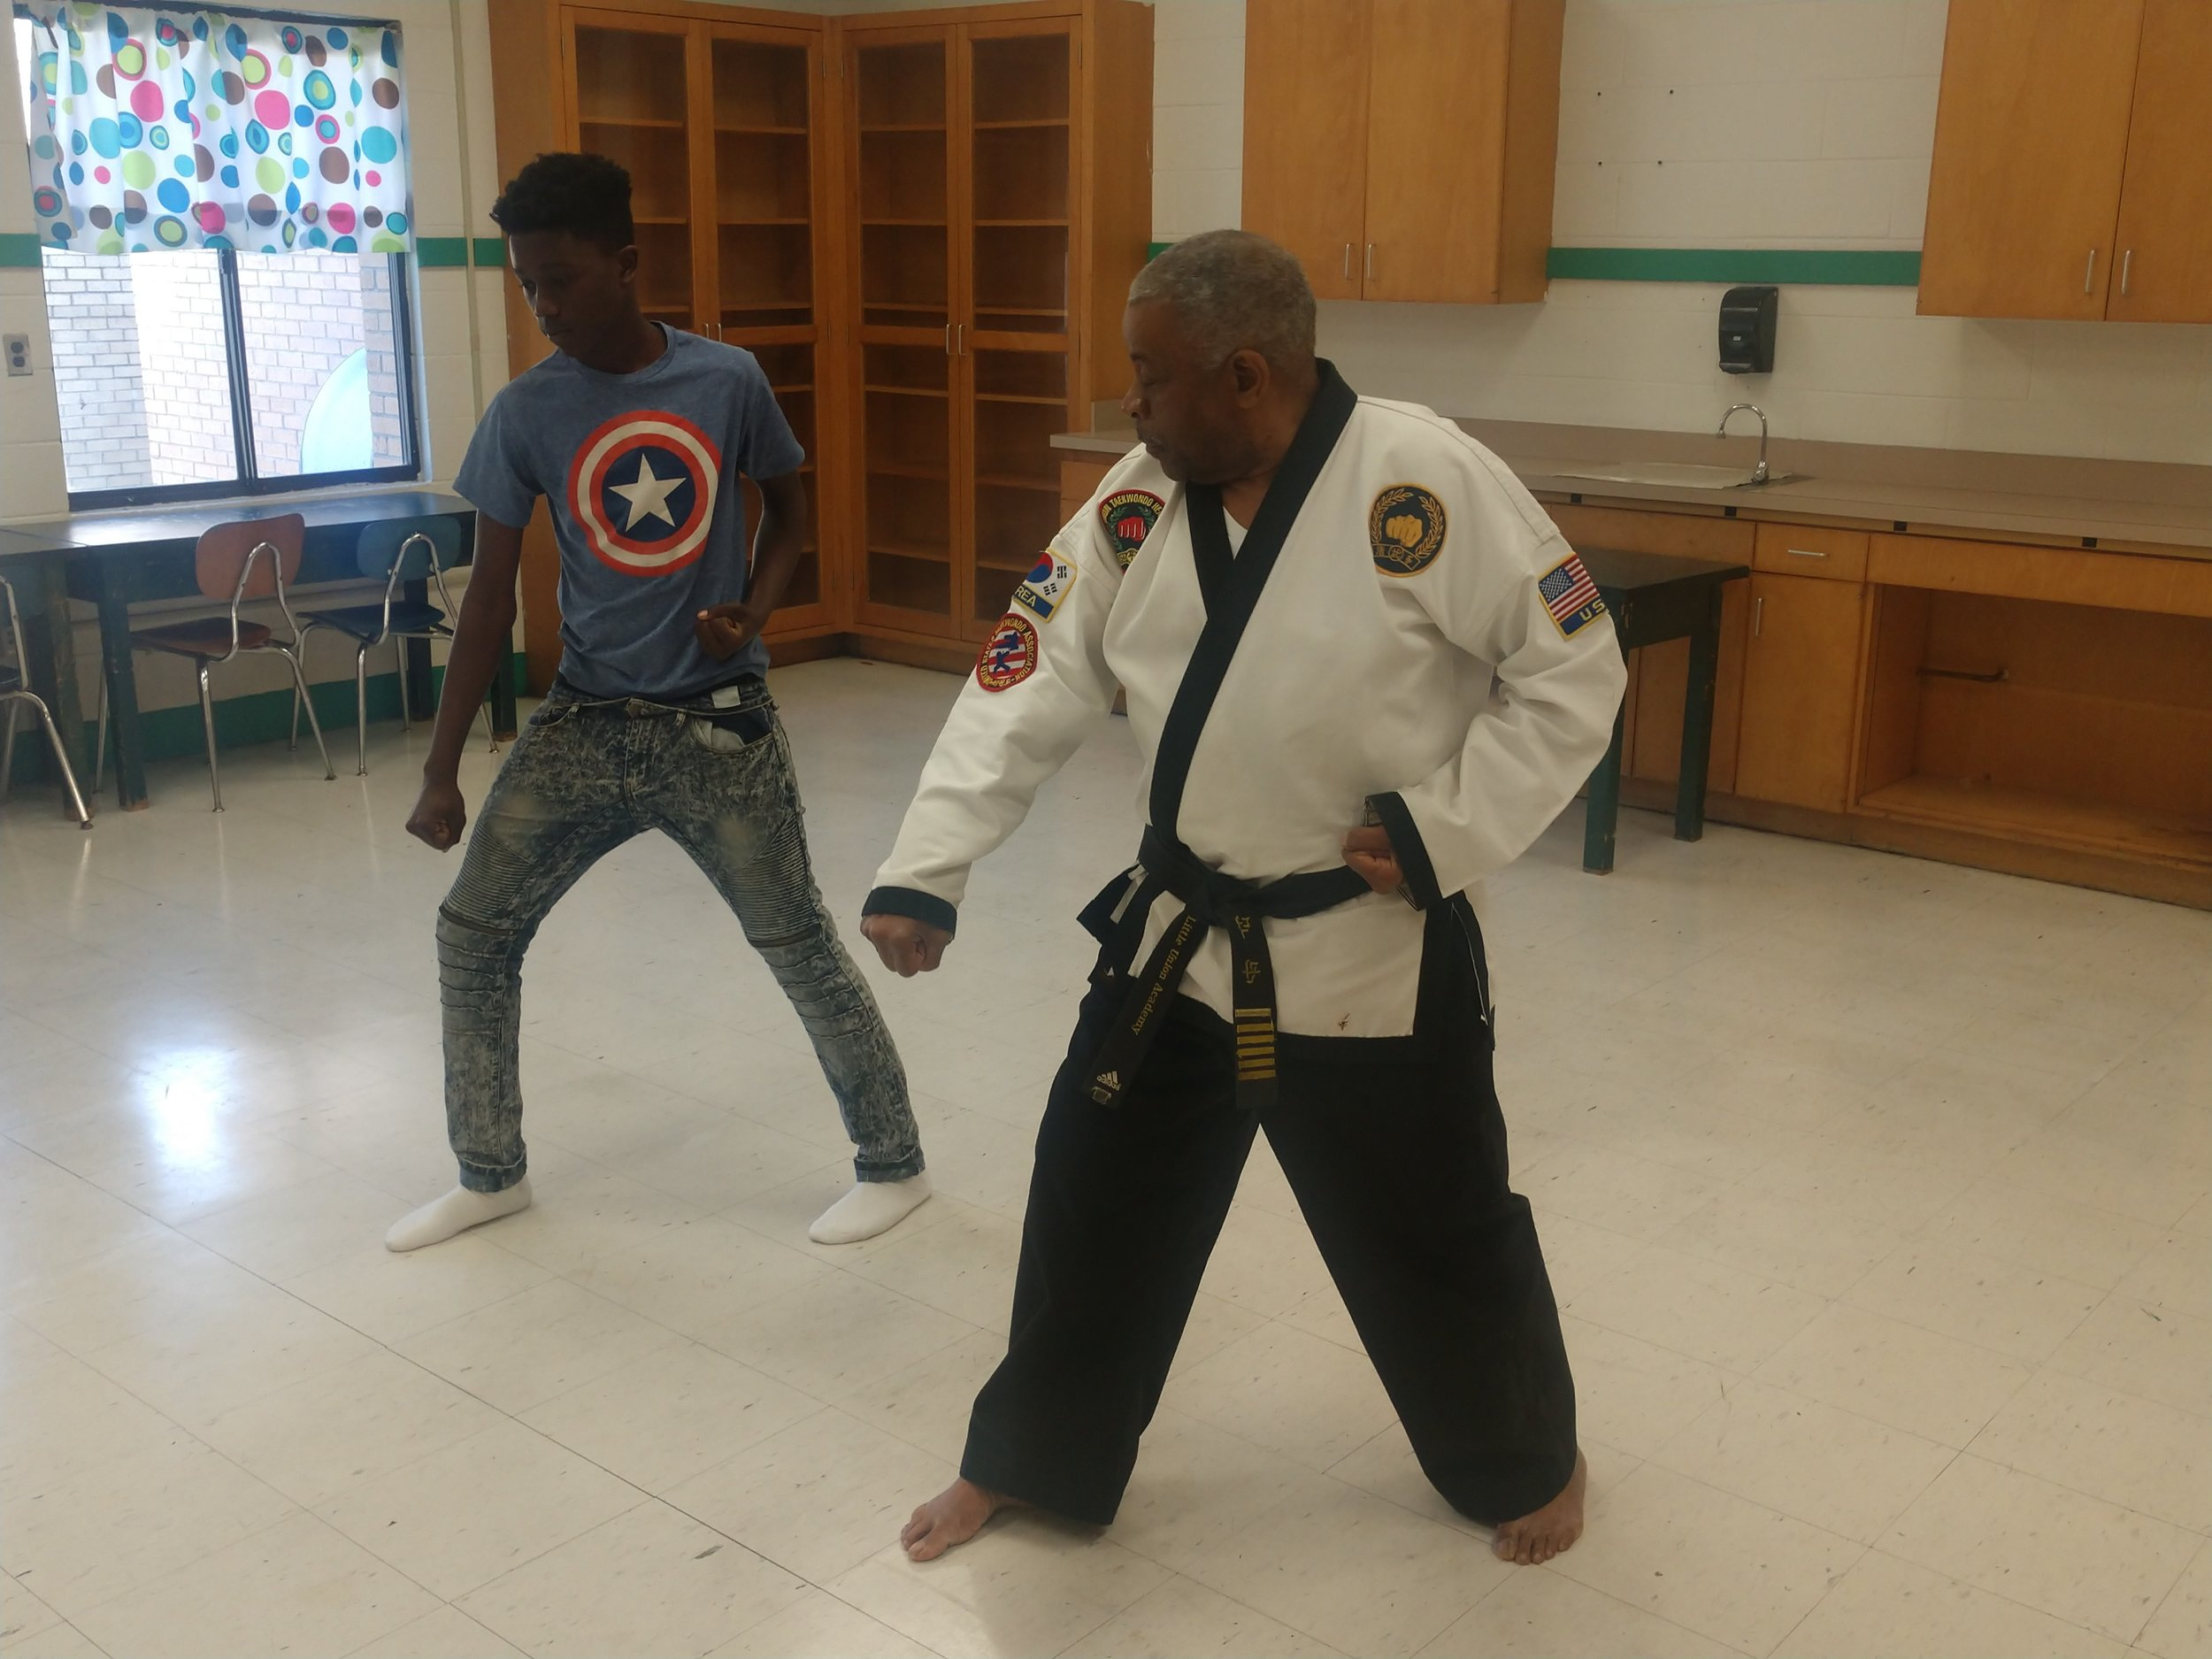 Master Joseph Jones goes over Tae Kwon Do techniques with Rochelle Middle seventh-grader Yazmere Hatch during a class at the school. Photo by Junious Smith III / Neuse News